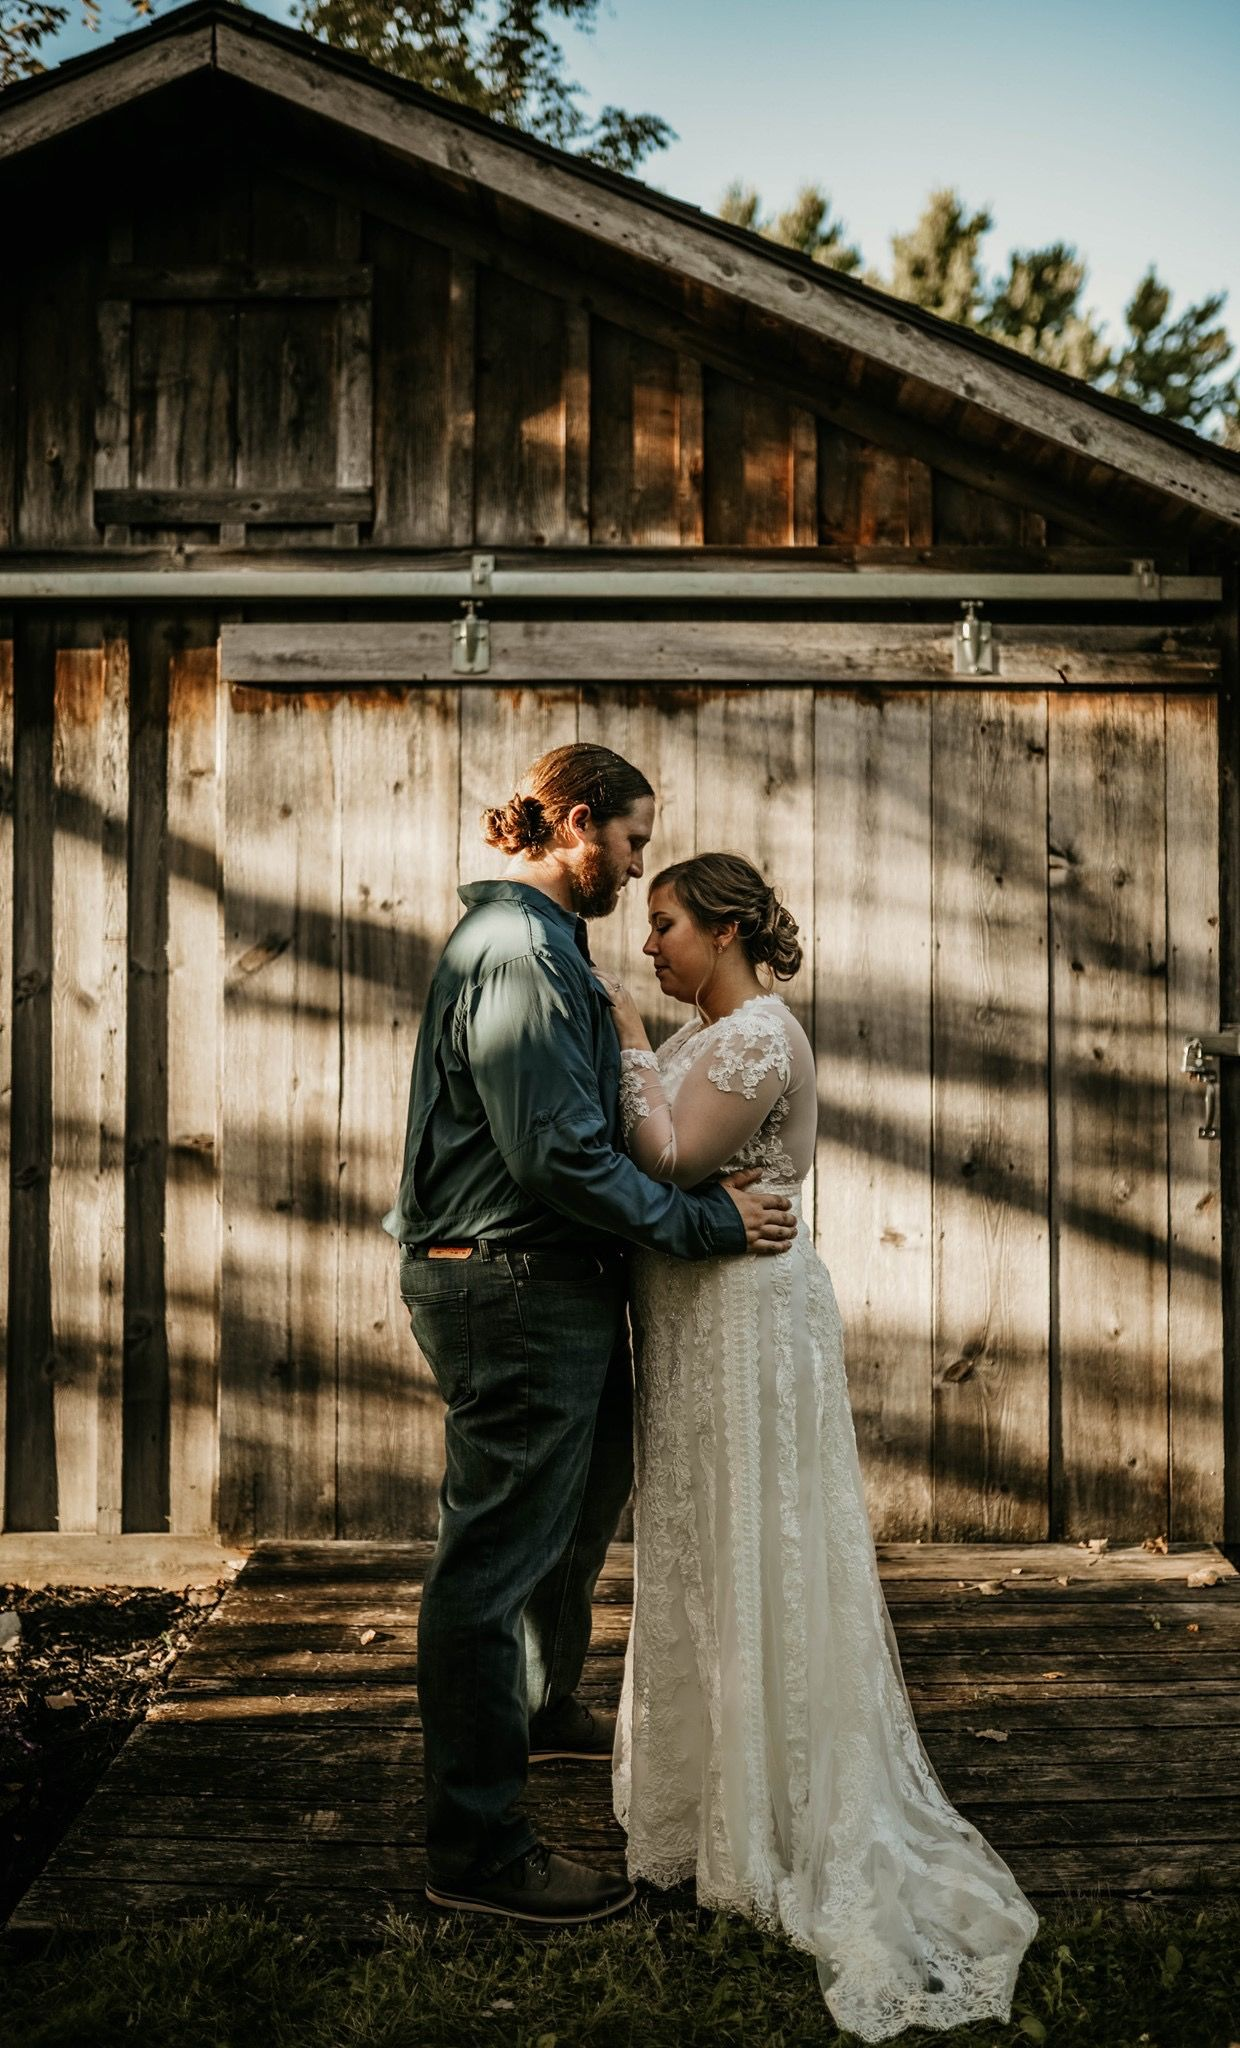 These two got married in their backyard at an intimate ...